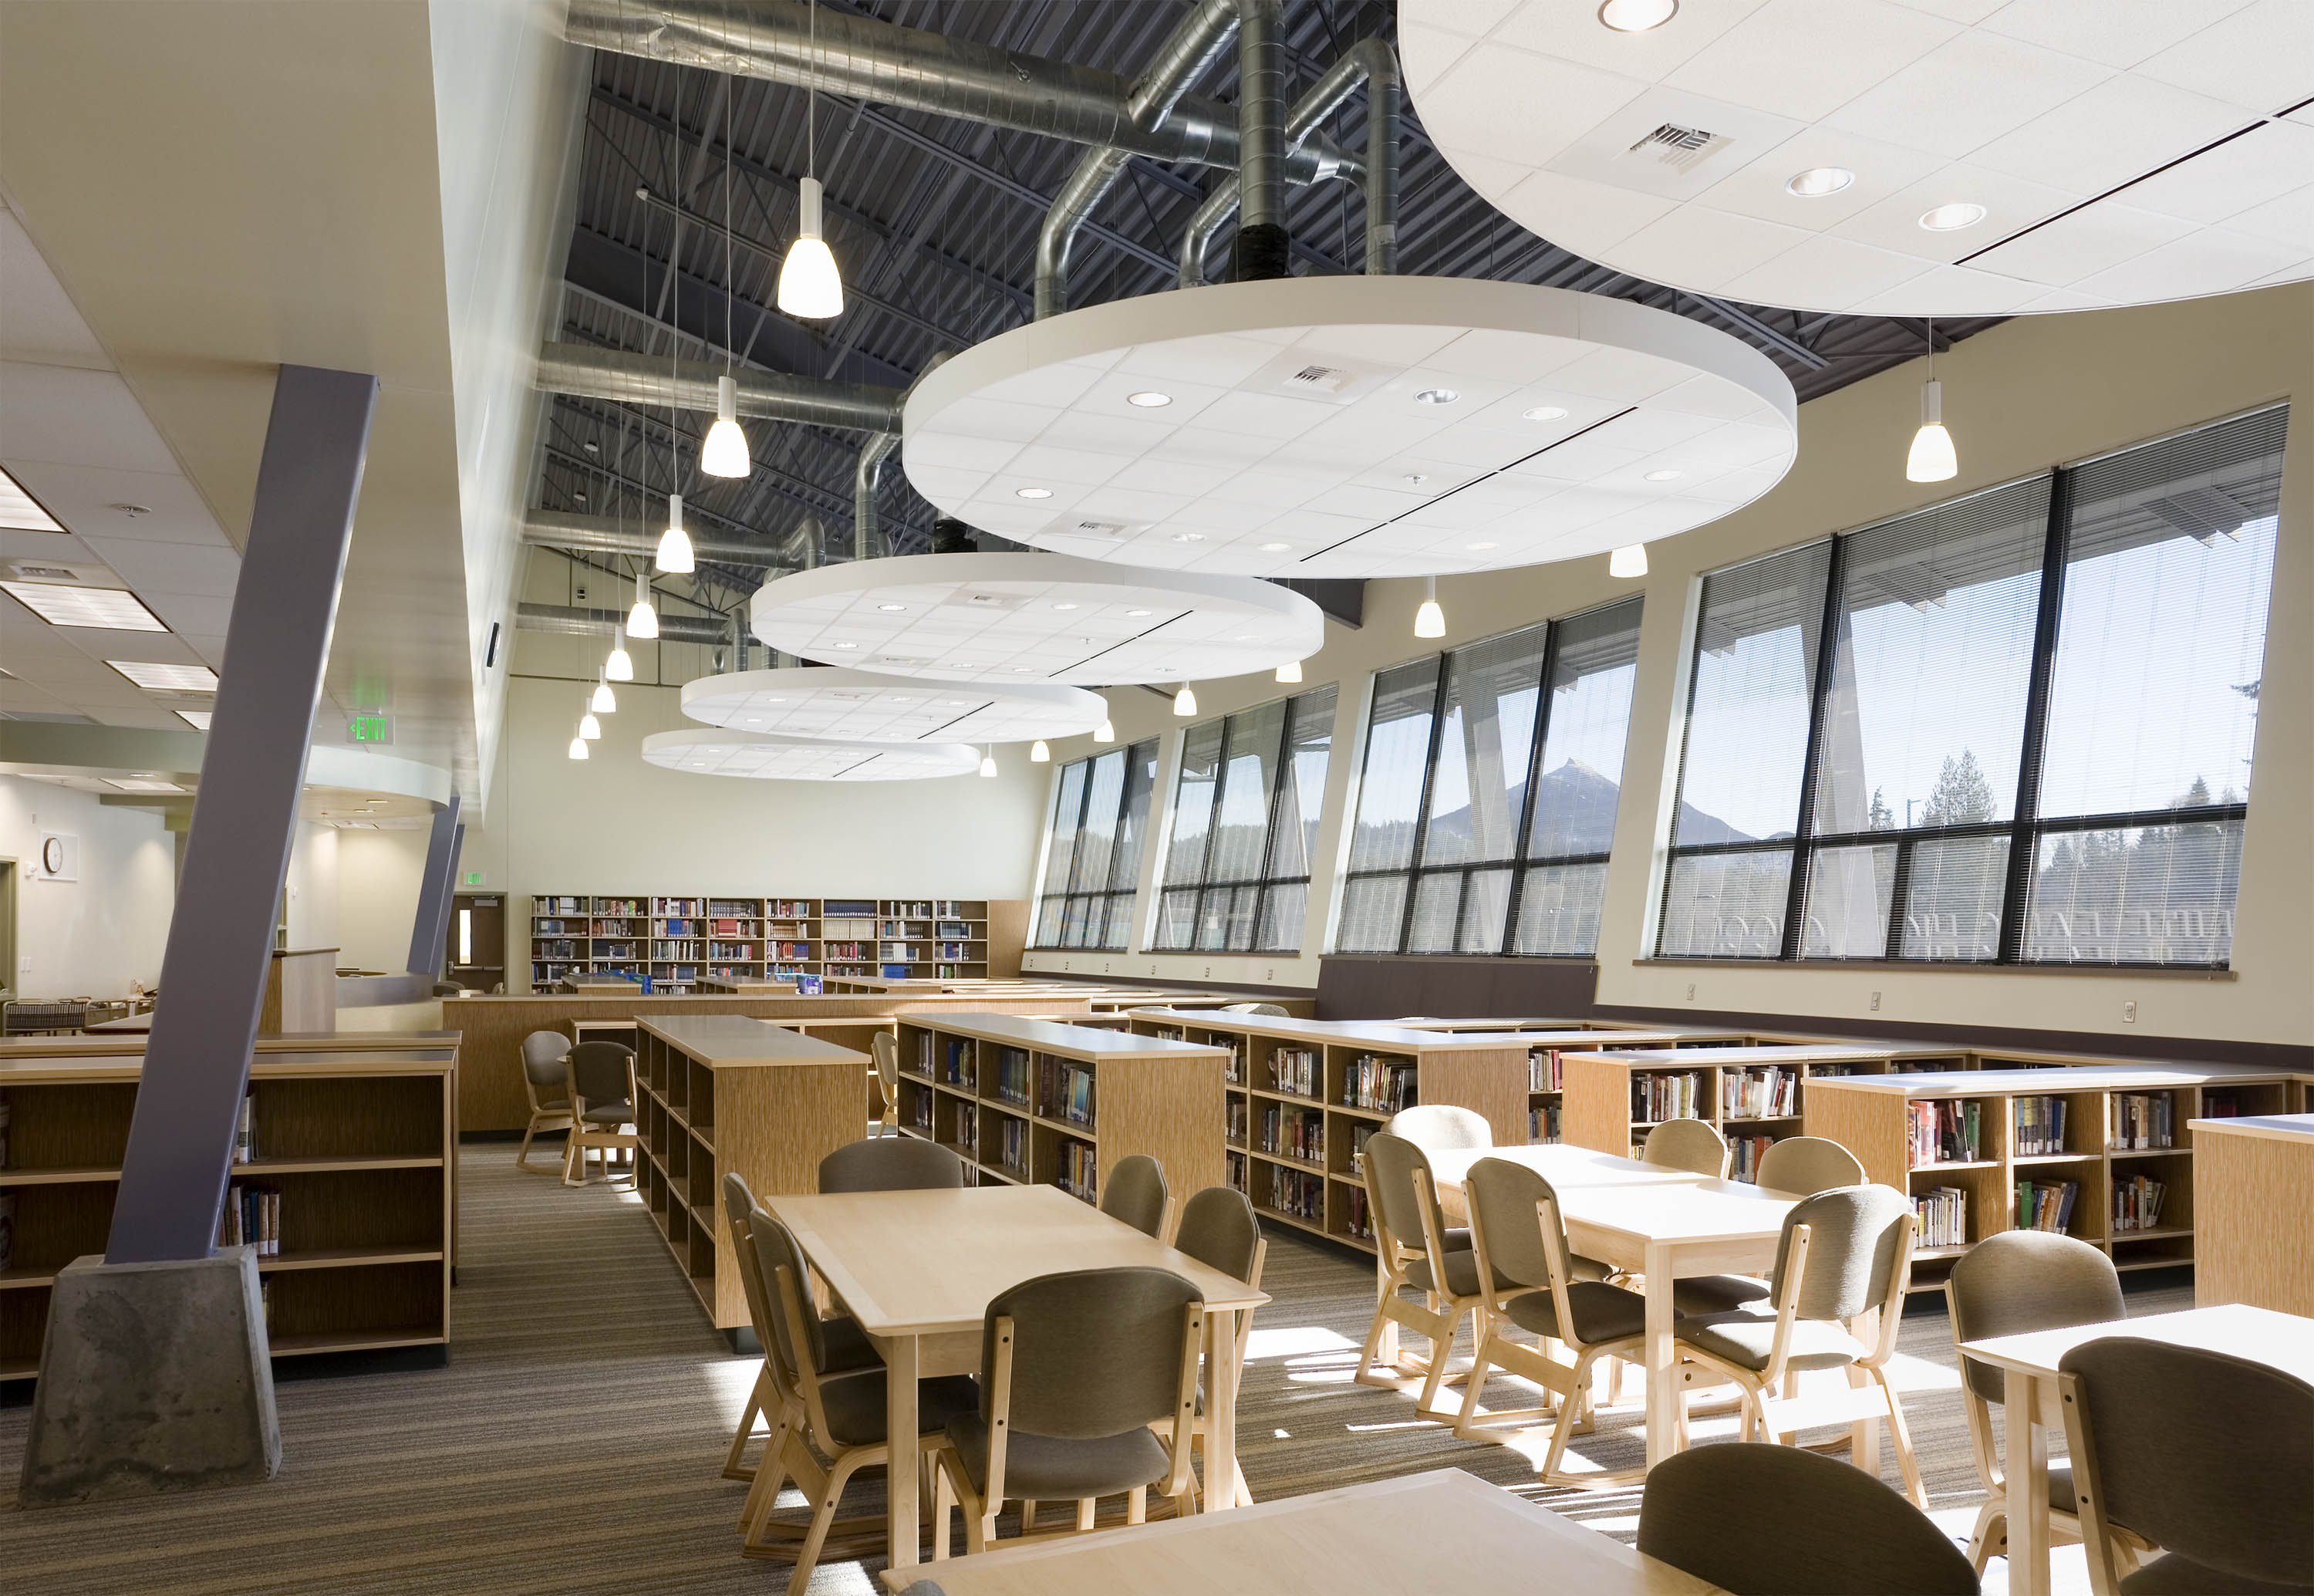 Sunlight streaming into the library.